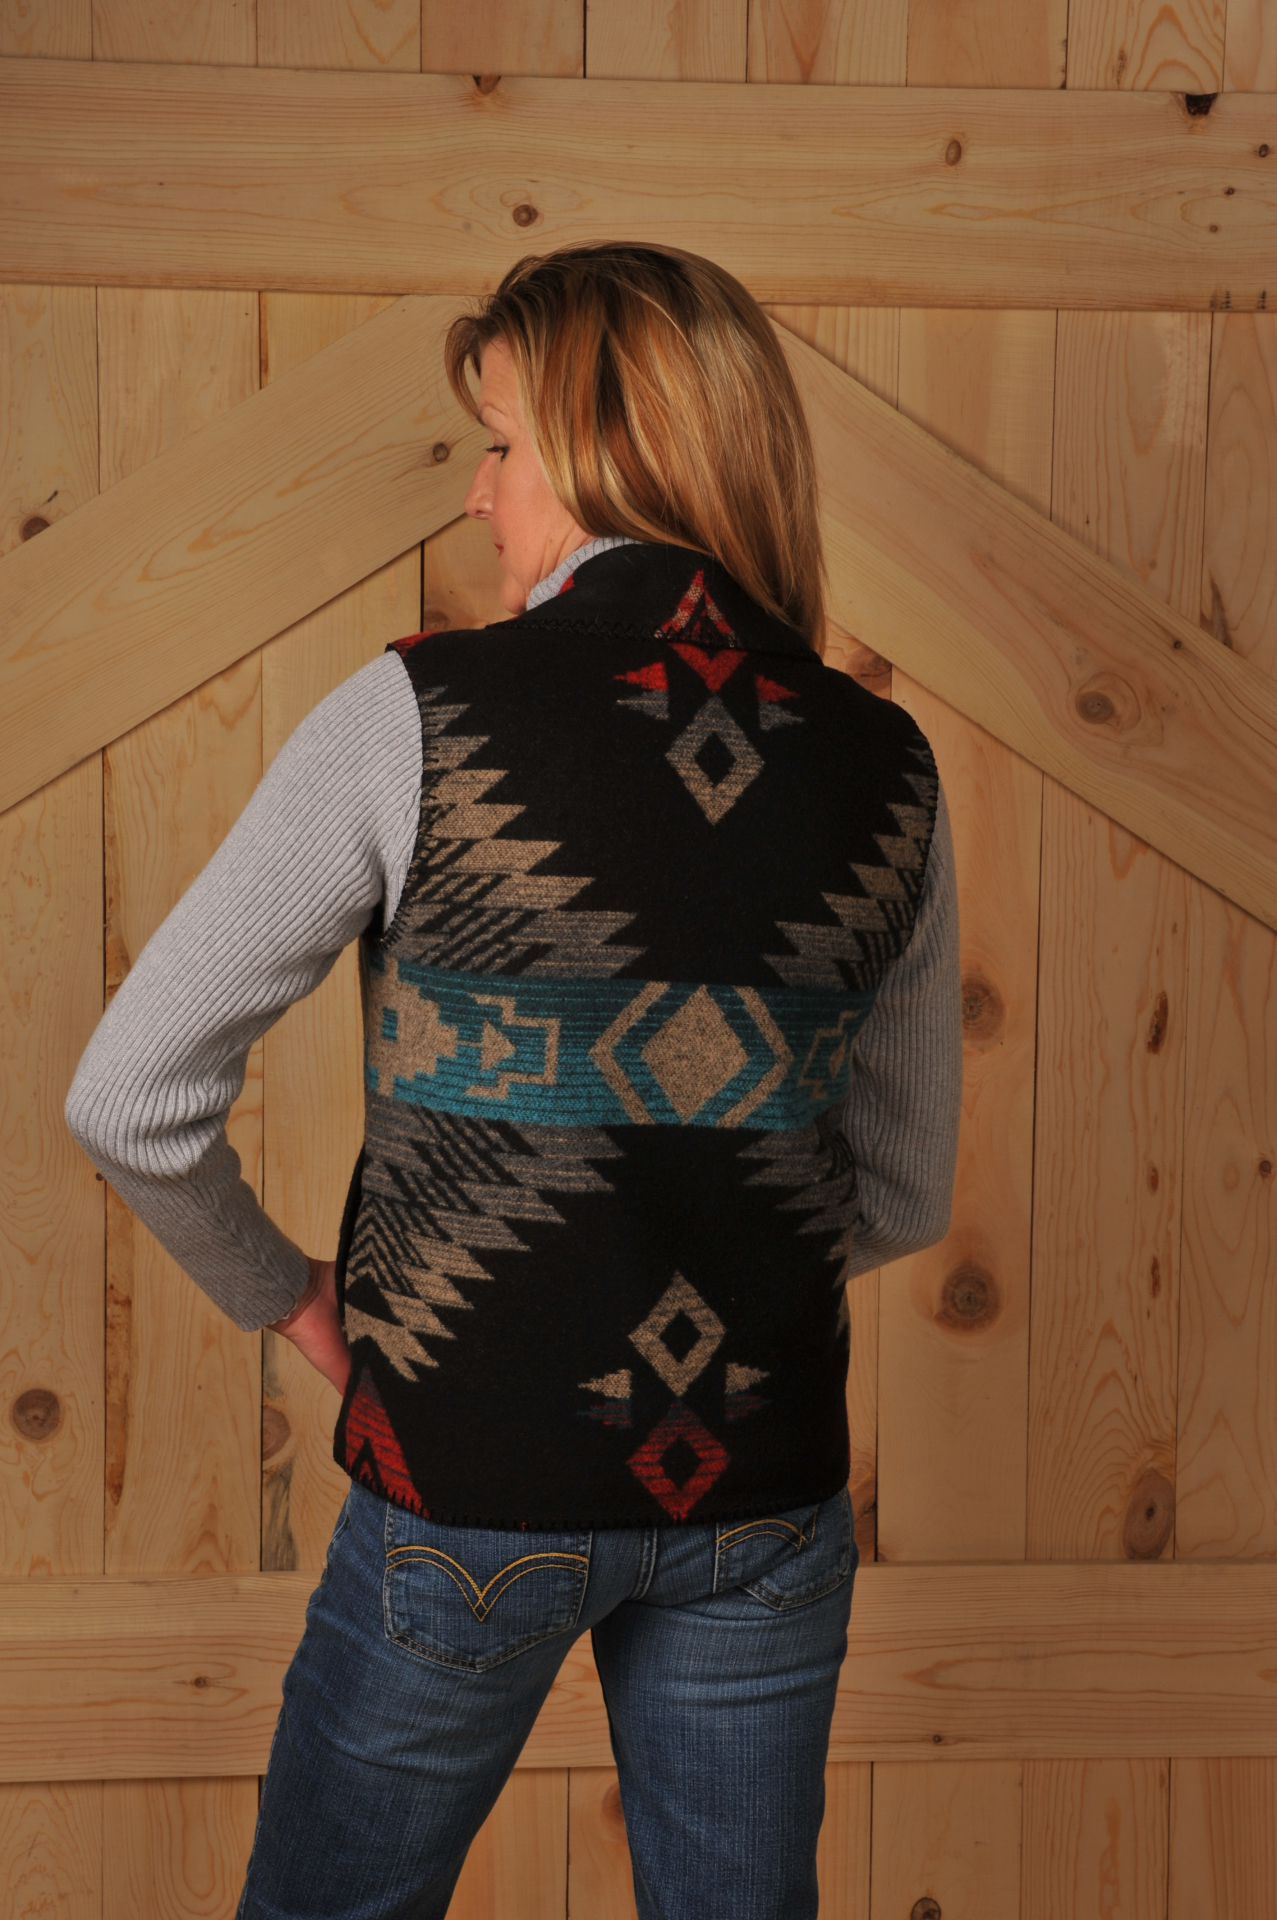 #130DKG - GREY DAKOTA LONG SHAWL VEST - Back             $99.95